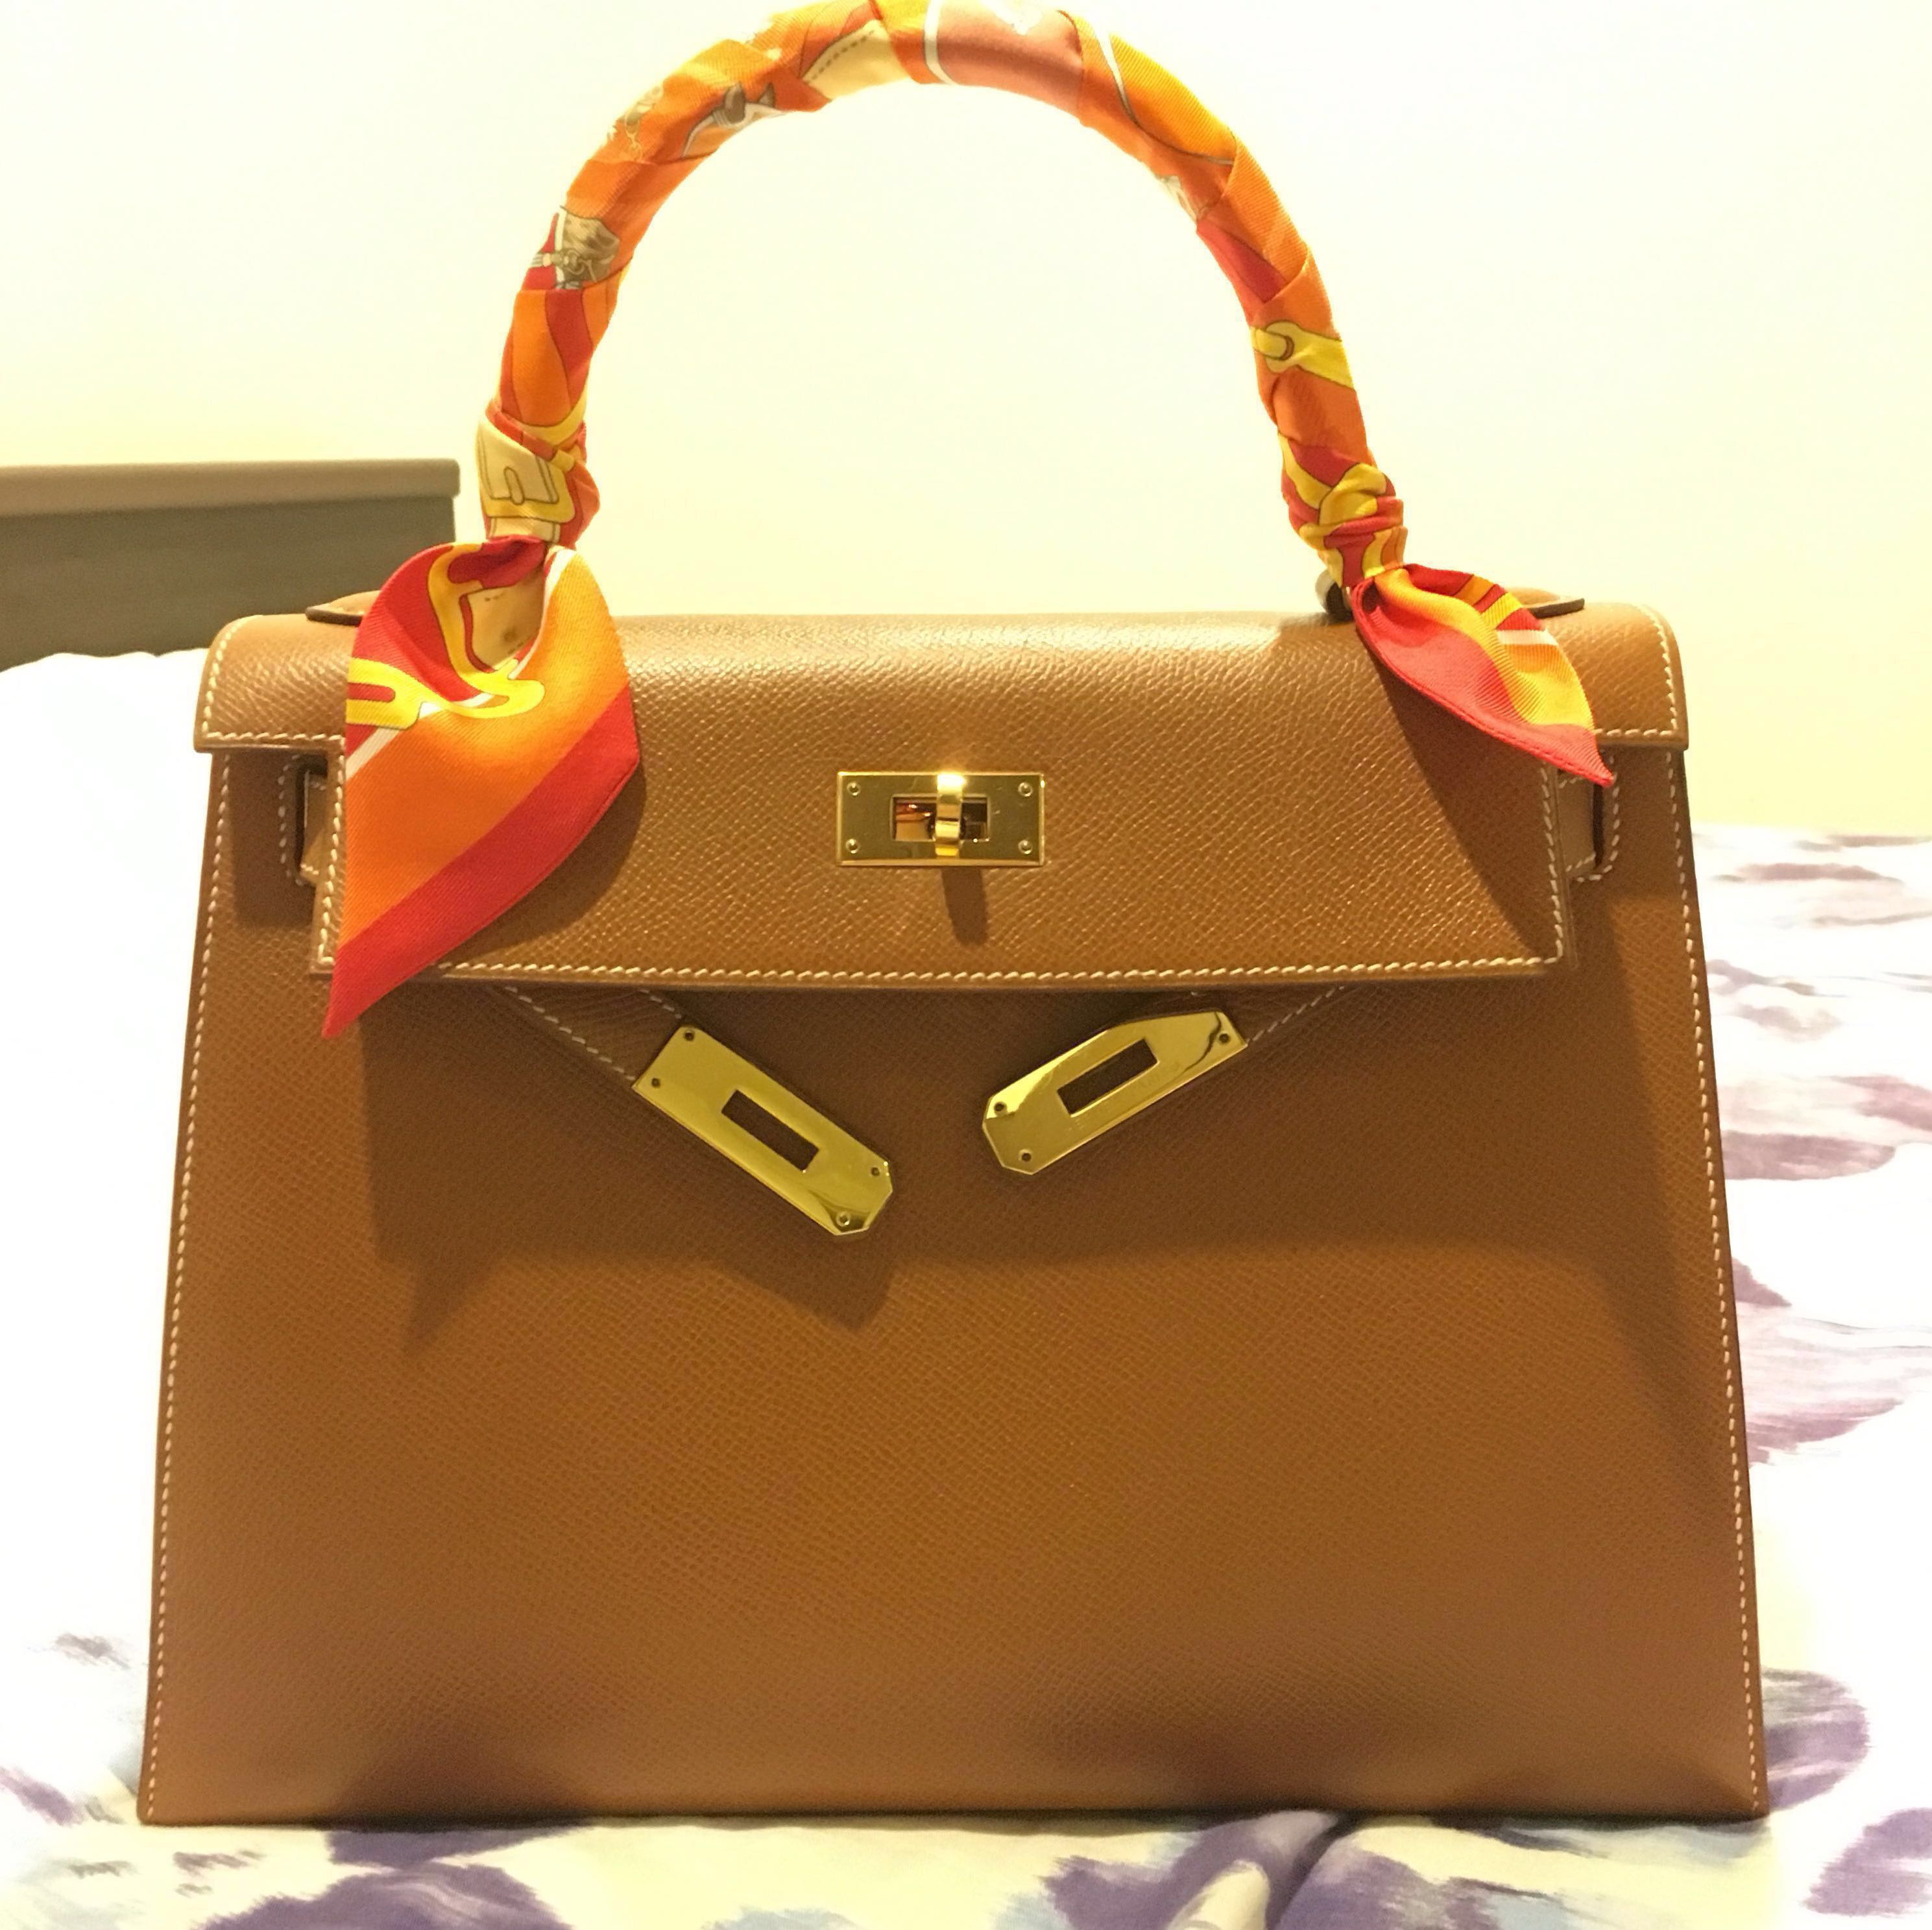 932e77a1dc0d Hermès Kelly 28 Gold Epsom Sellier